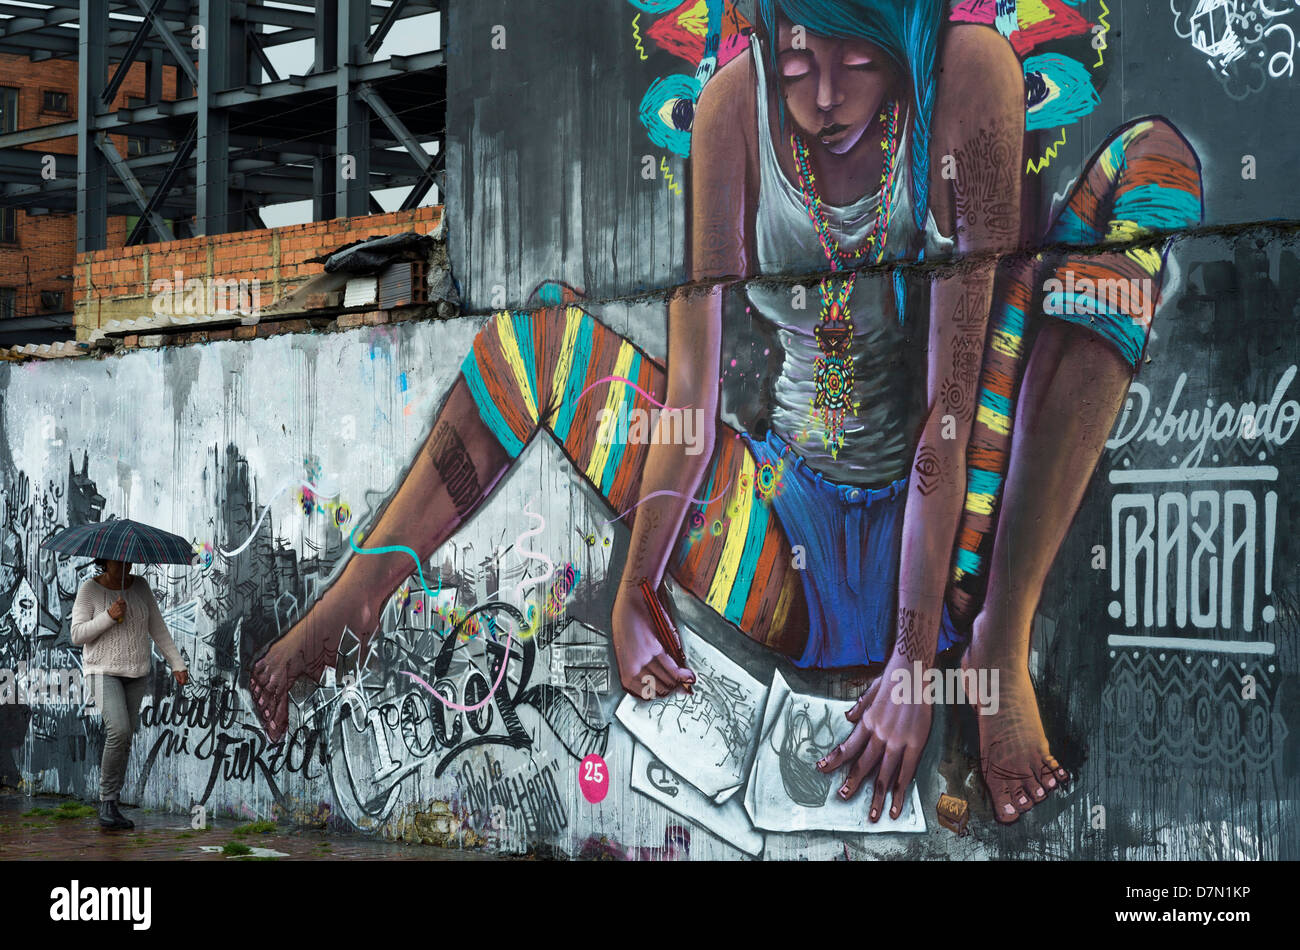 Graffiti (mural), in the street in Bogota, Colombia. - Stock Image